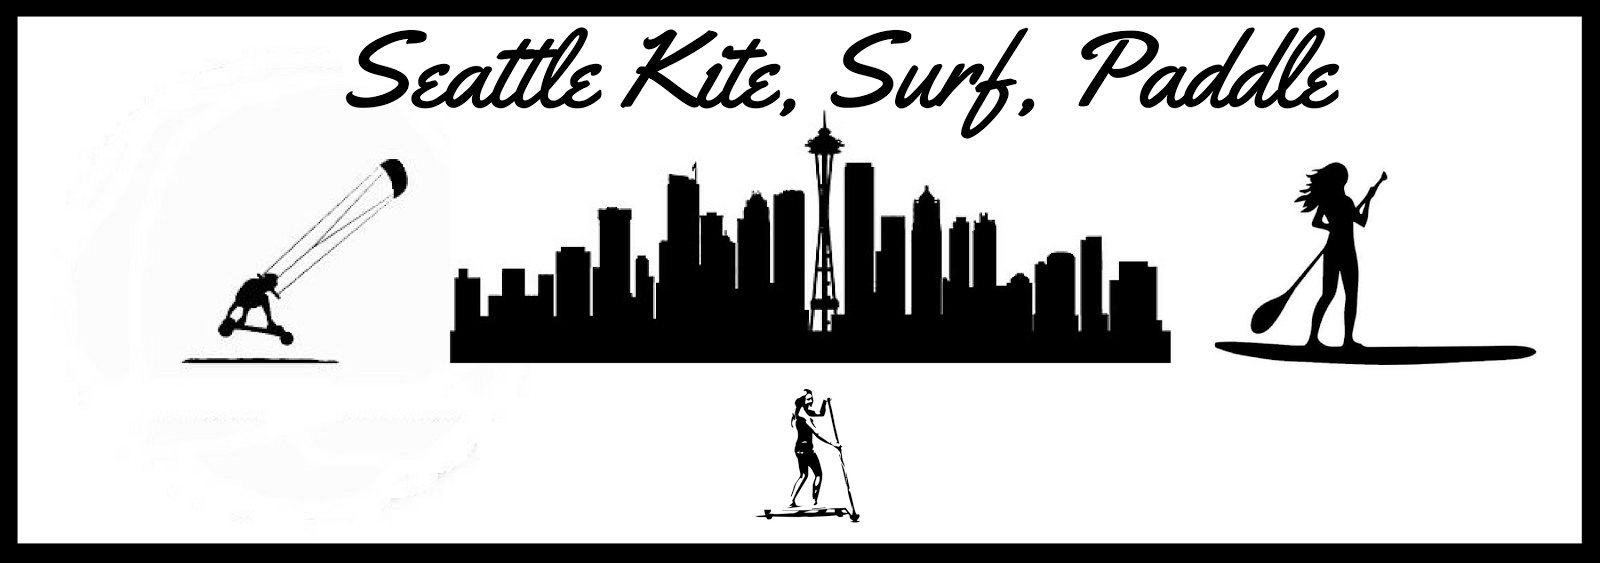 Seattle Kite, Surf, Paddle